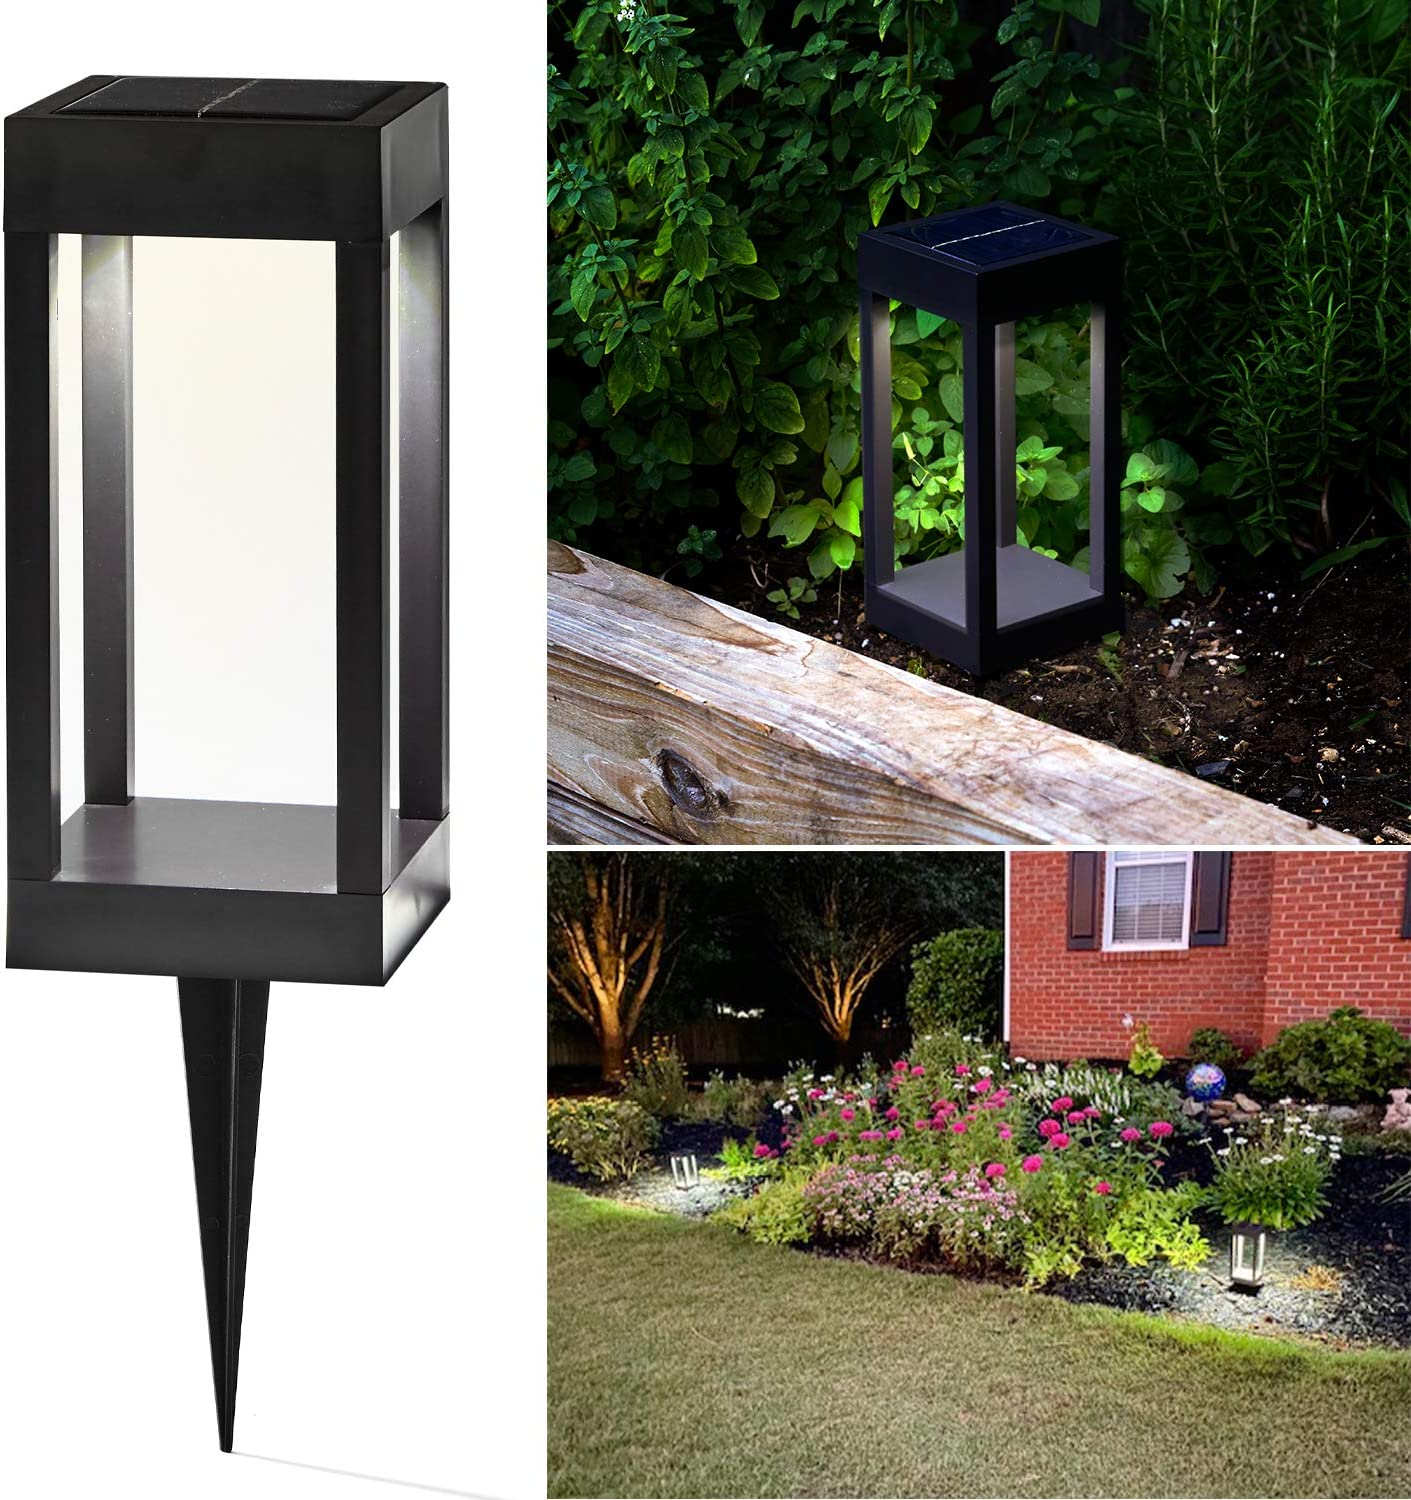 Solar Year-end annual account LED Pathway Light - Max 48% OFF 9 or Inch White Color-Chang Cool Tall